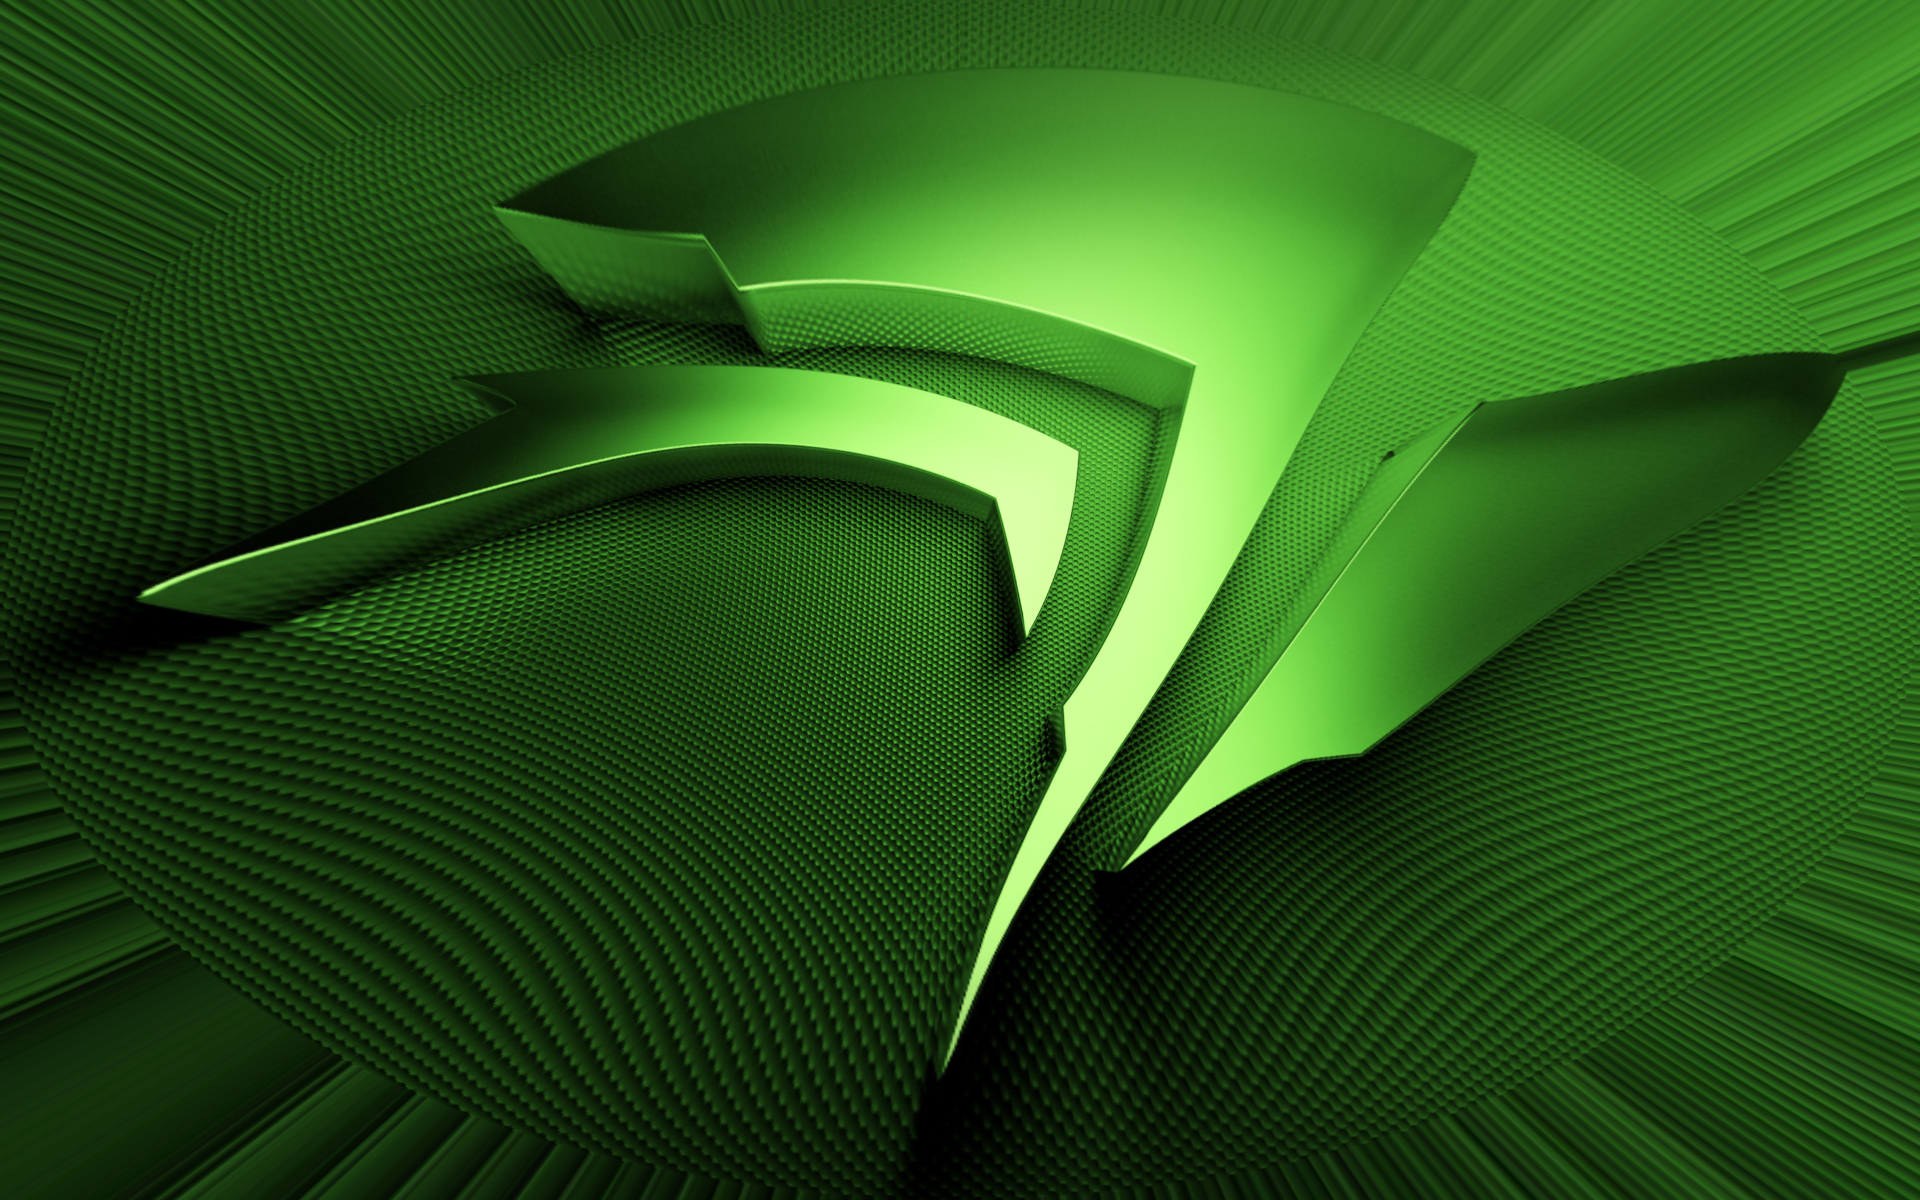 Nvidia Wallpaper: Background Images - Wallpaper Abyss